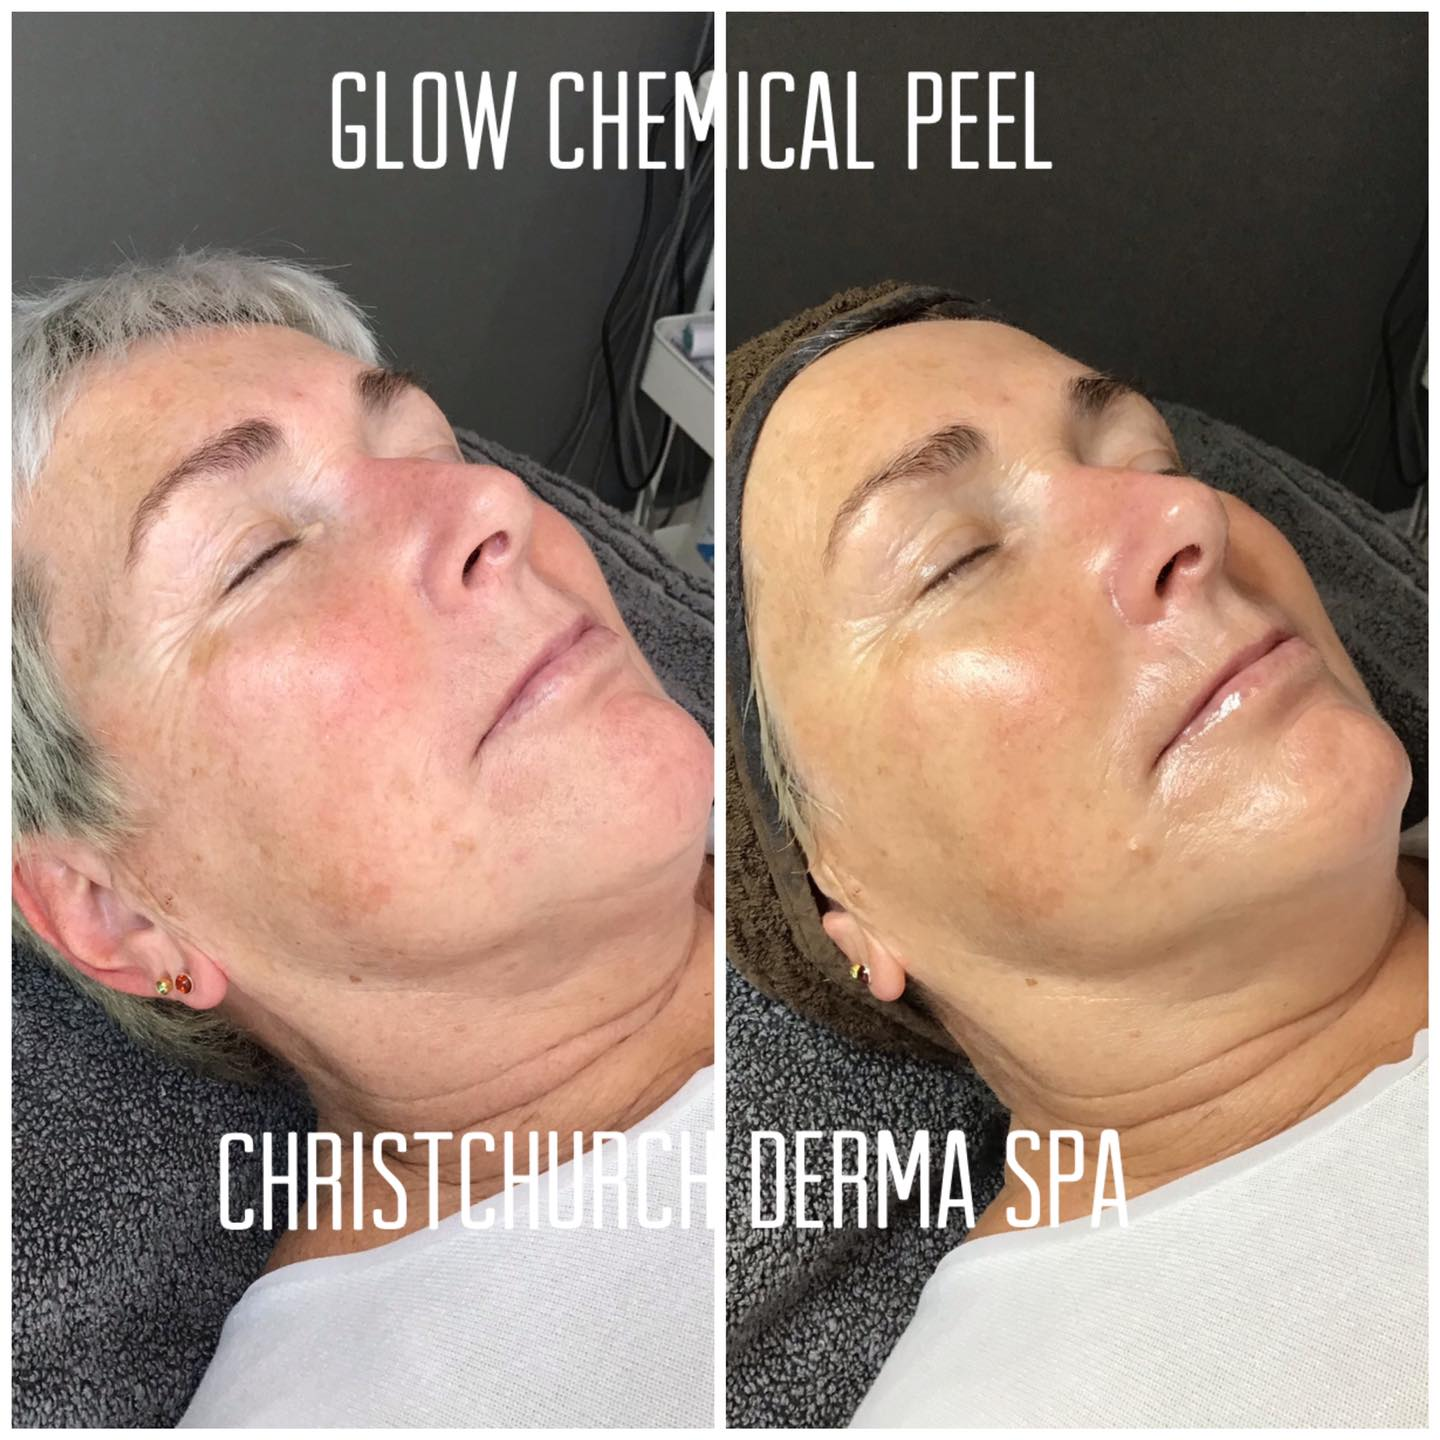 Glow Chemical Peel before and after photos